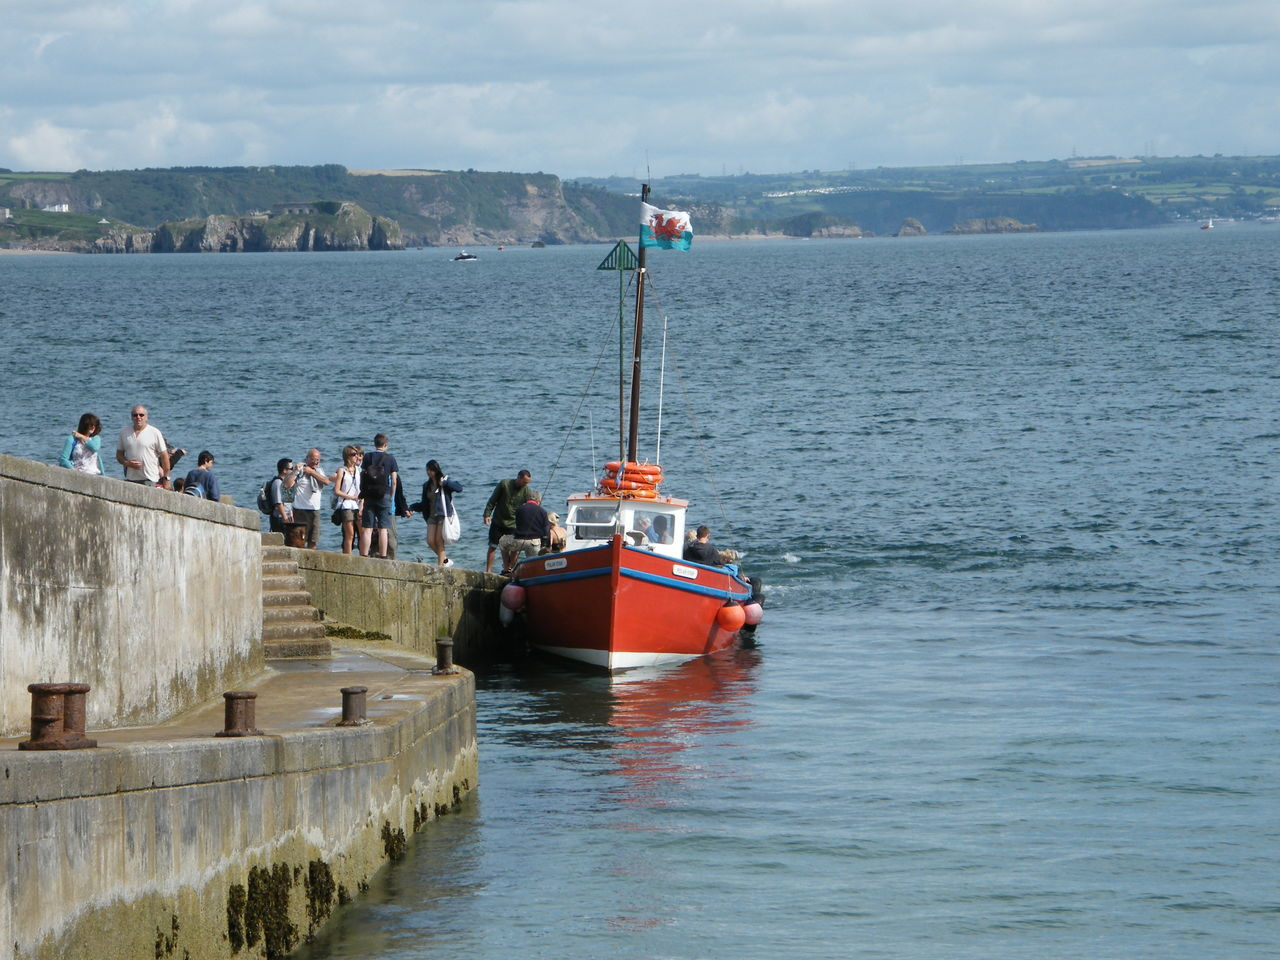 Adventure Boat Trip Caldey Island Cloud - Sky Day Disembarking Exploring Ferry Fishing Boat Harbour Holiday Nautical Vessel Outdoors Passengers Pembrokeshire Pembrokeshire Coast Red Boat Sky Water The Red Boat